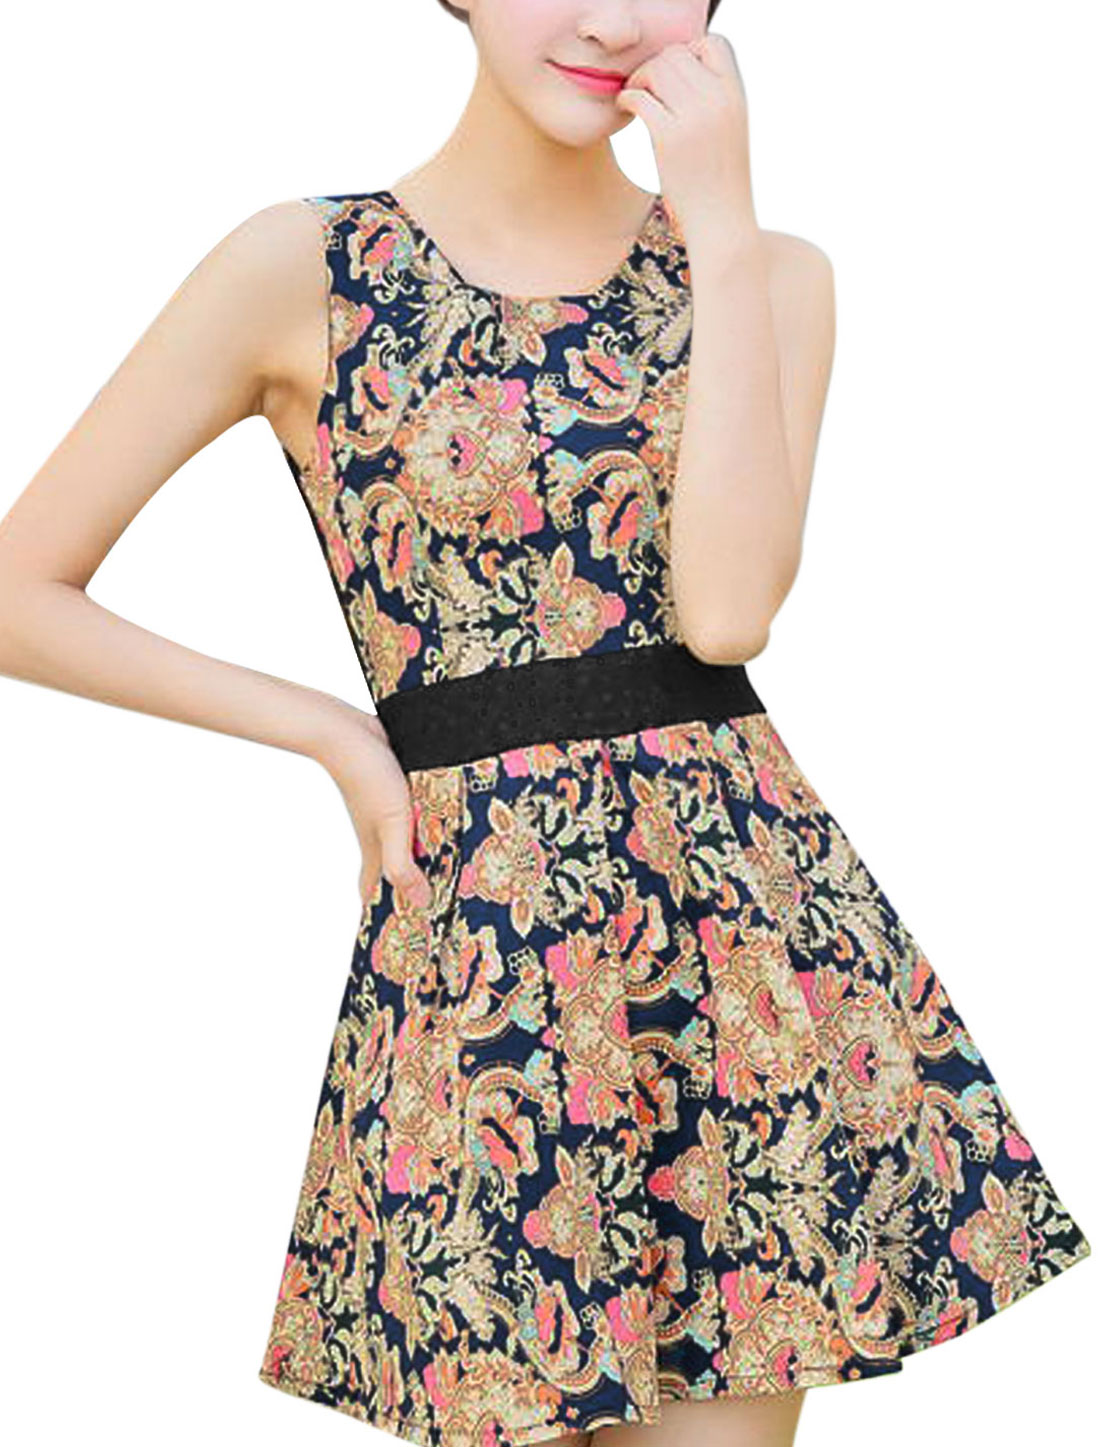 Women Hollow Out Detail Floral Prints Elegant Tank Dress Navy Blue M